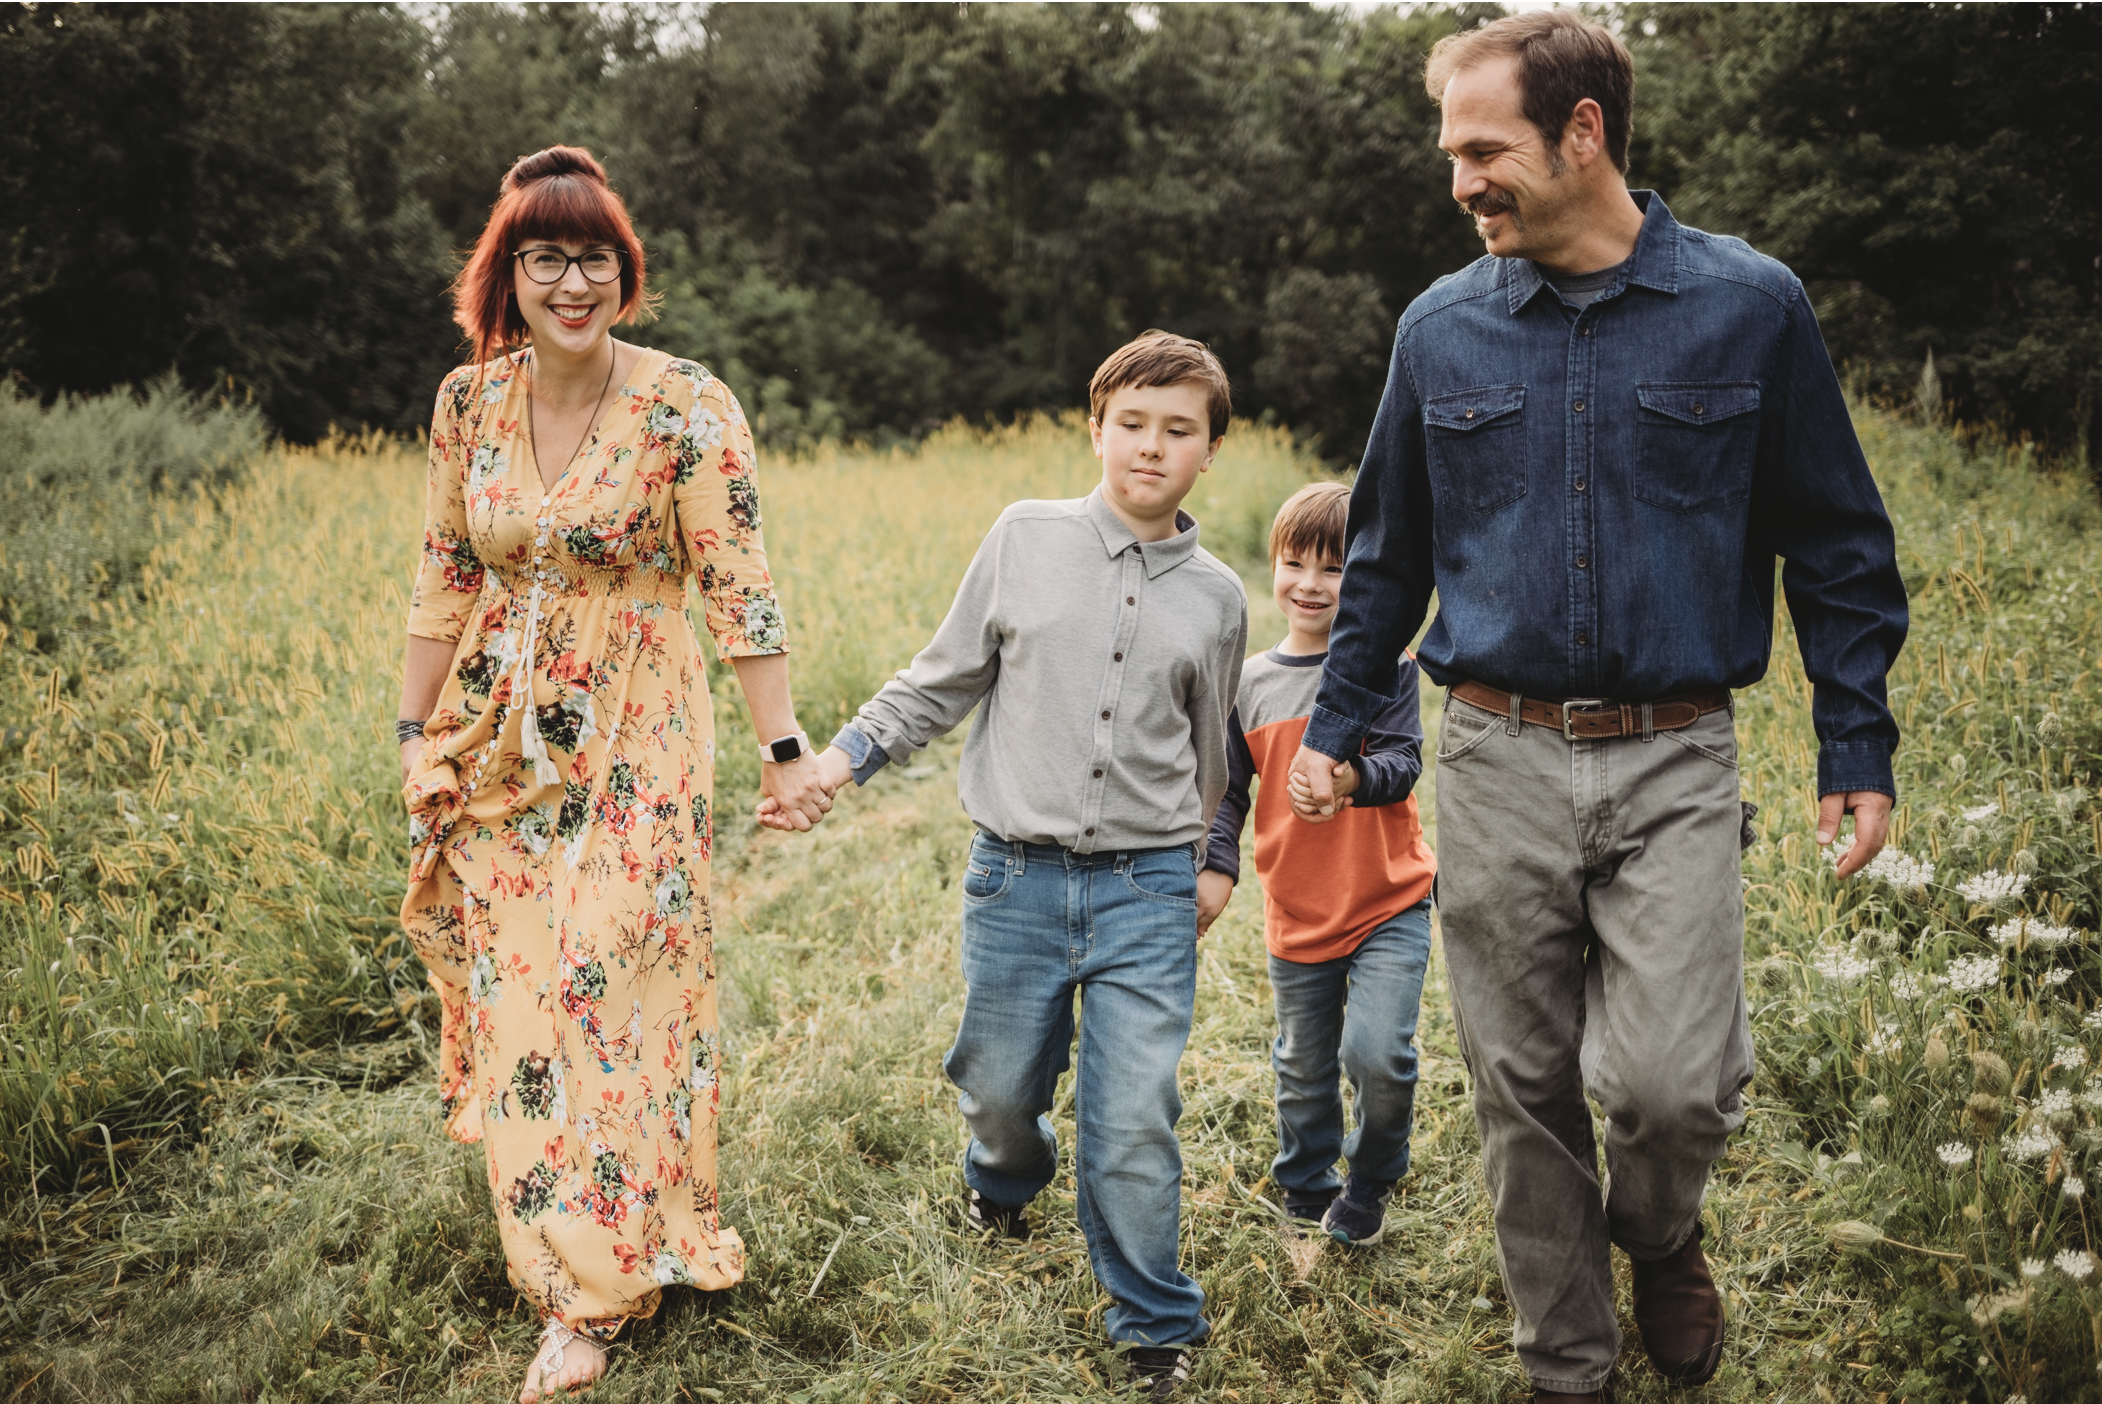 I always suggest starting with mom for family outfit planning! Photo of family walking in a field, with a beautiful mom wearing a long, flowy dress in sunshine yellow with a floral pattern.